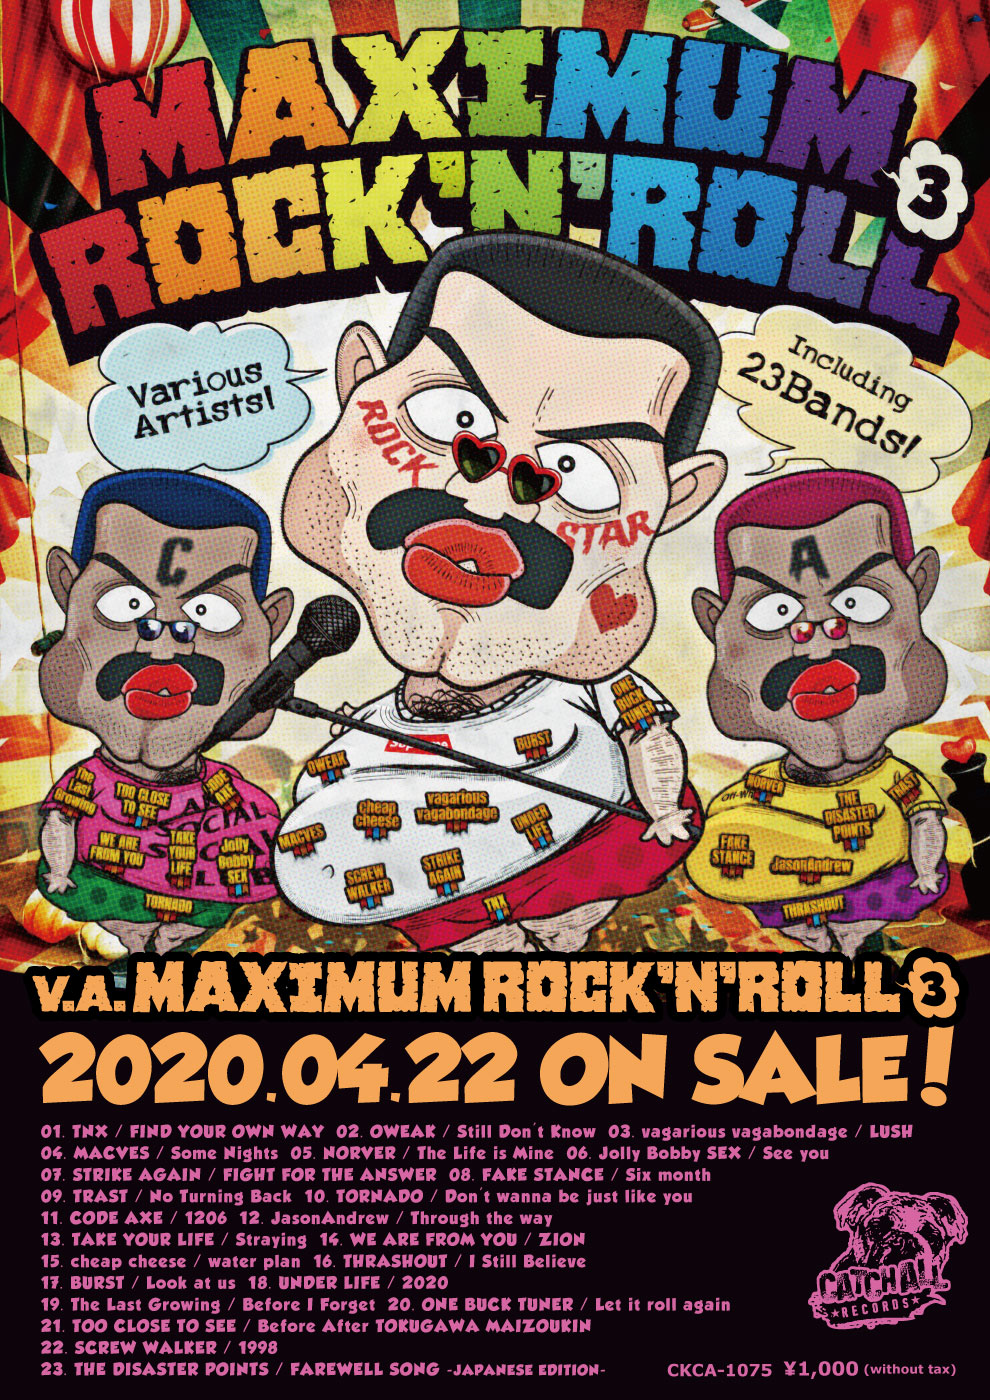 V.A. / MAXIMUM ROCK'N'ROLL 3 発売決定